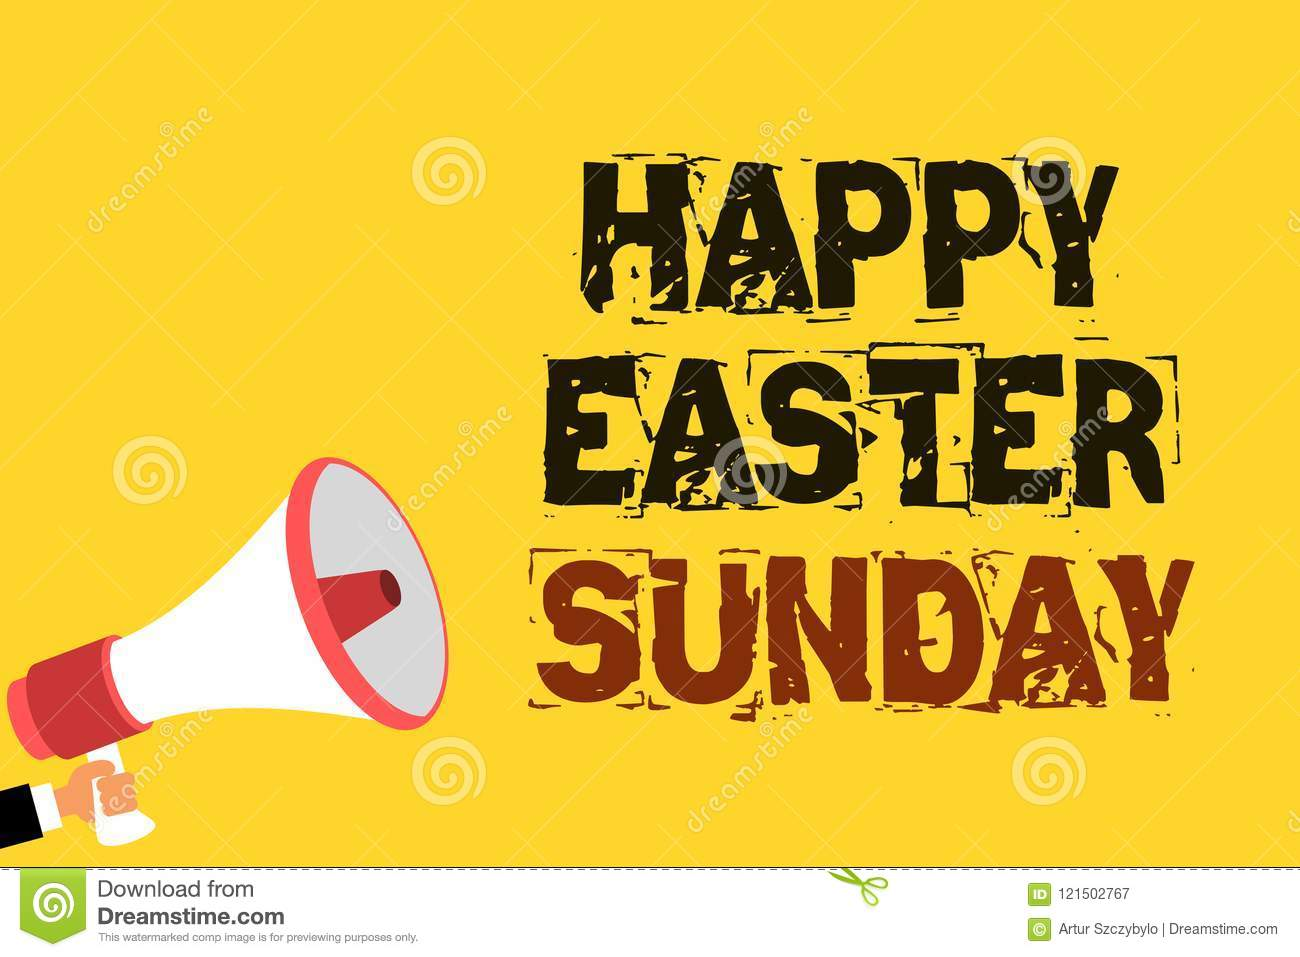 Handwriting text writing happy easter sunday concept meaning handwriting text writing happy easter sunday concept meaning greeting someone about holidays spring is coming m4hsunfo